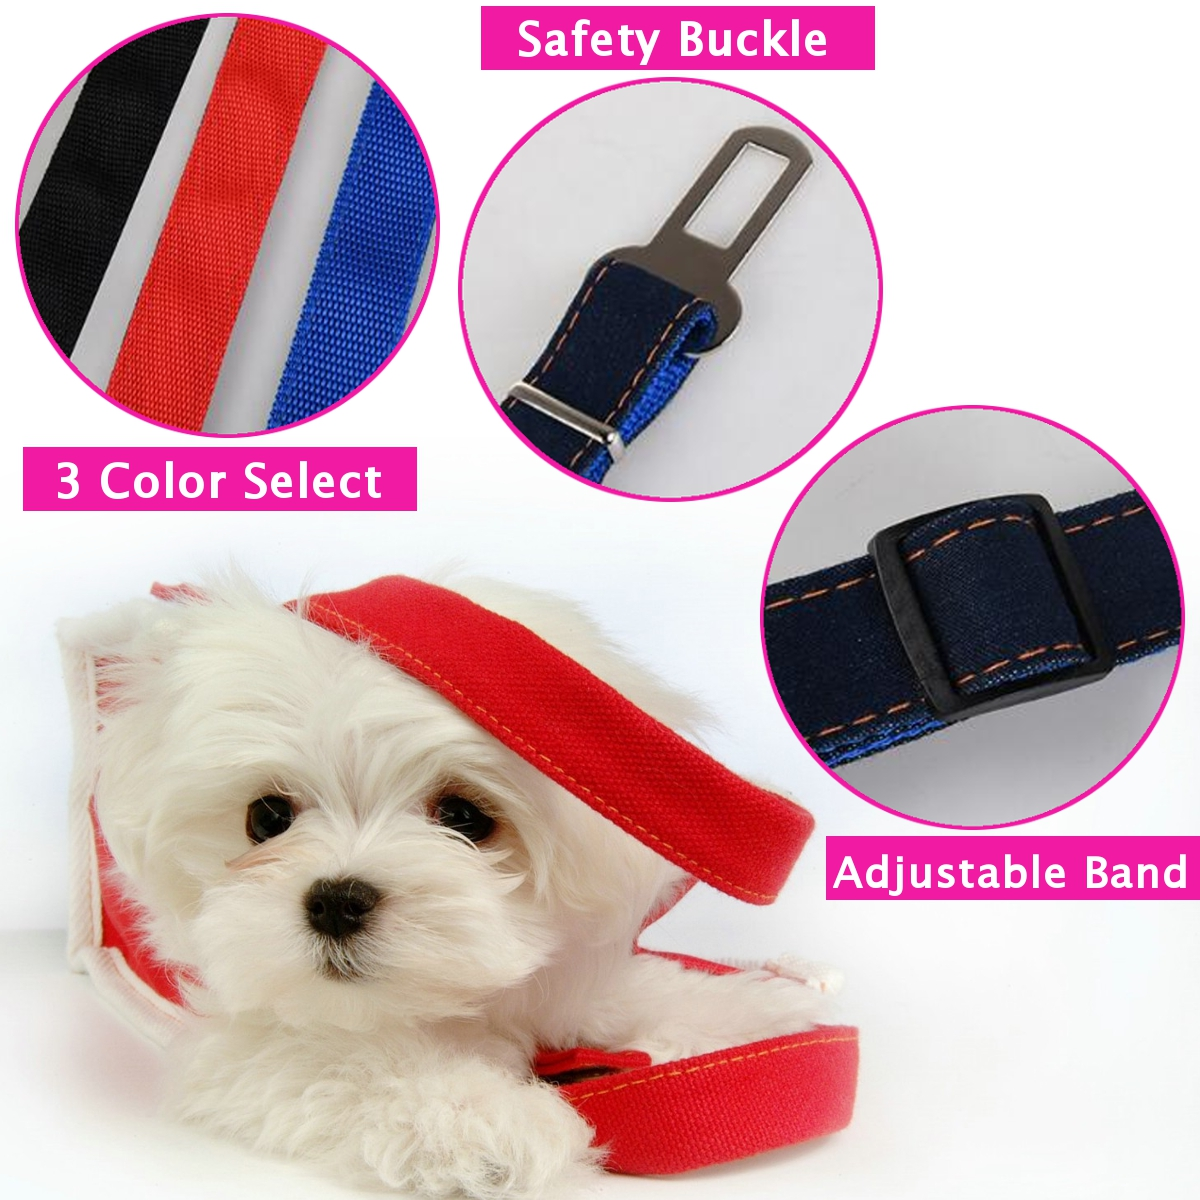 Dog Pet Car Safety Seat Belt Harness Restraint Lead Leash Travel Clip Dogs Supplies Accessories for Travel Seat Belts